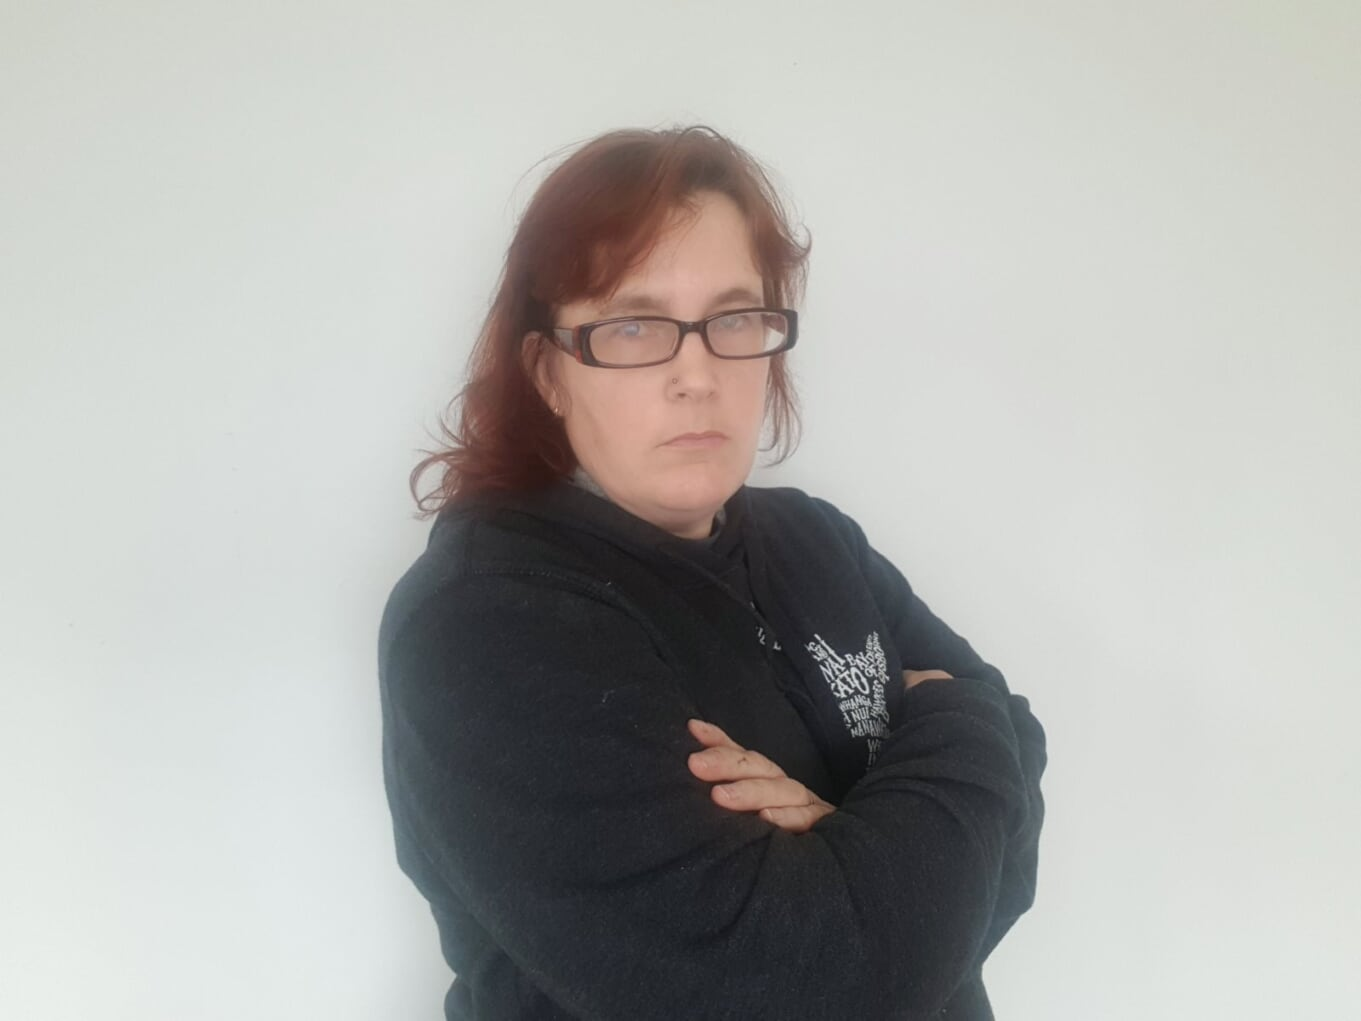 red haired woman in grey hoodie and glasses looking crossly into the camera with folded arms.